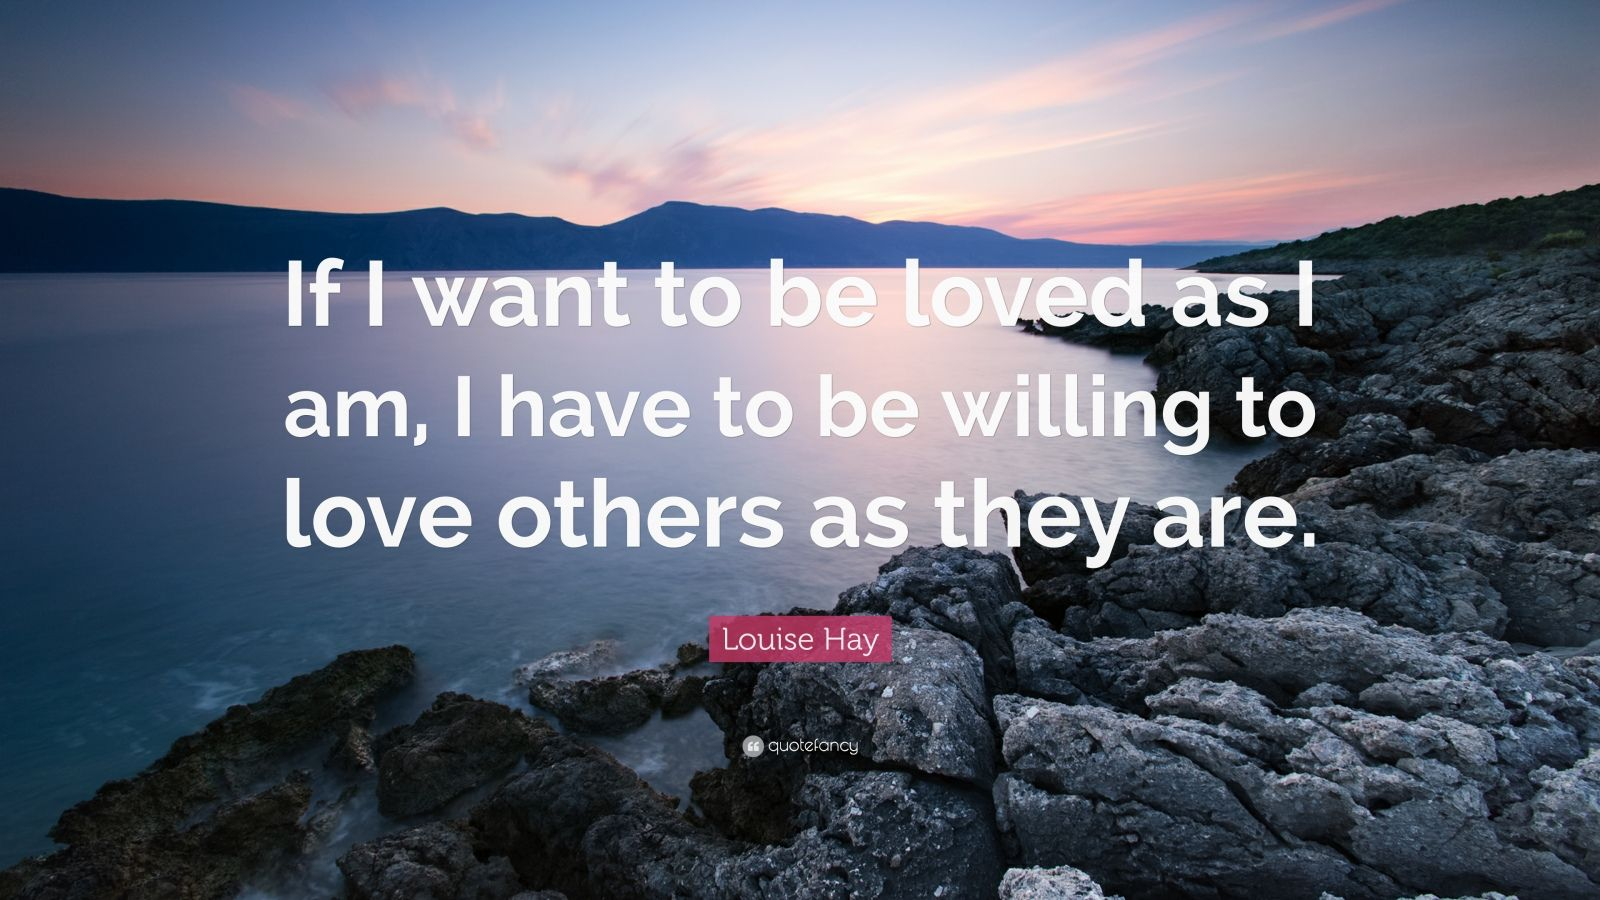 """Louise Hay Quote: """"If I want to be loved as I am, I have to be willing to love others as they are."""""""